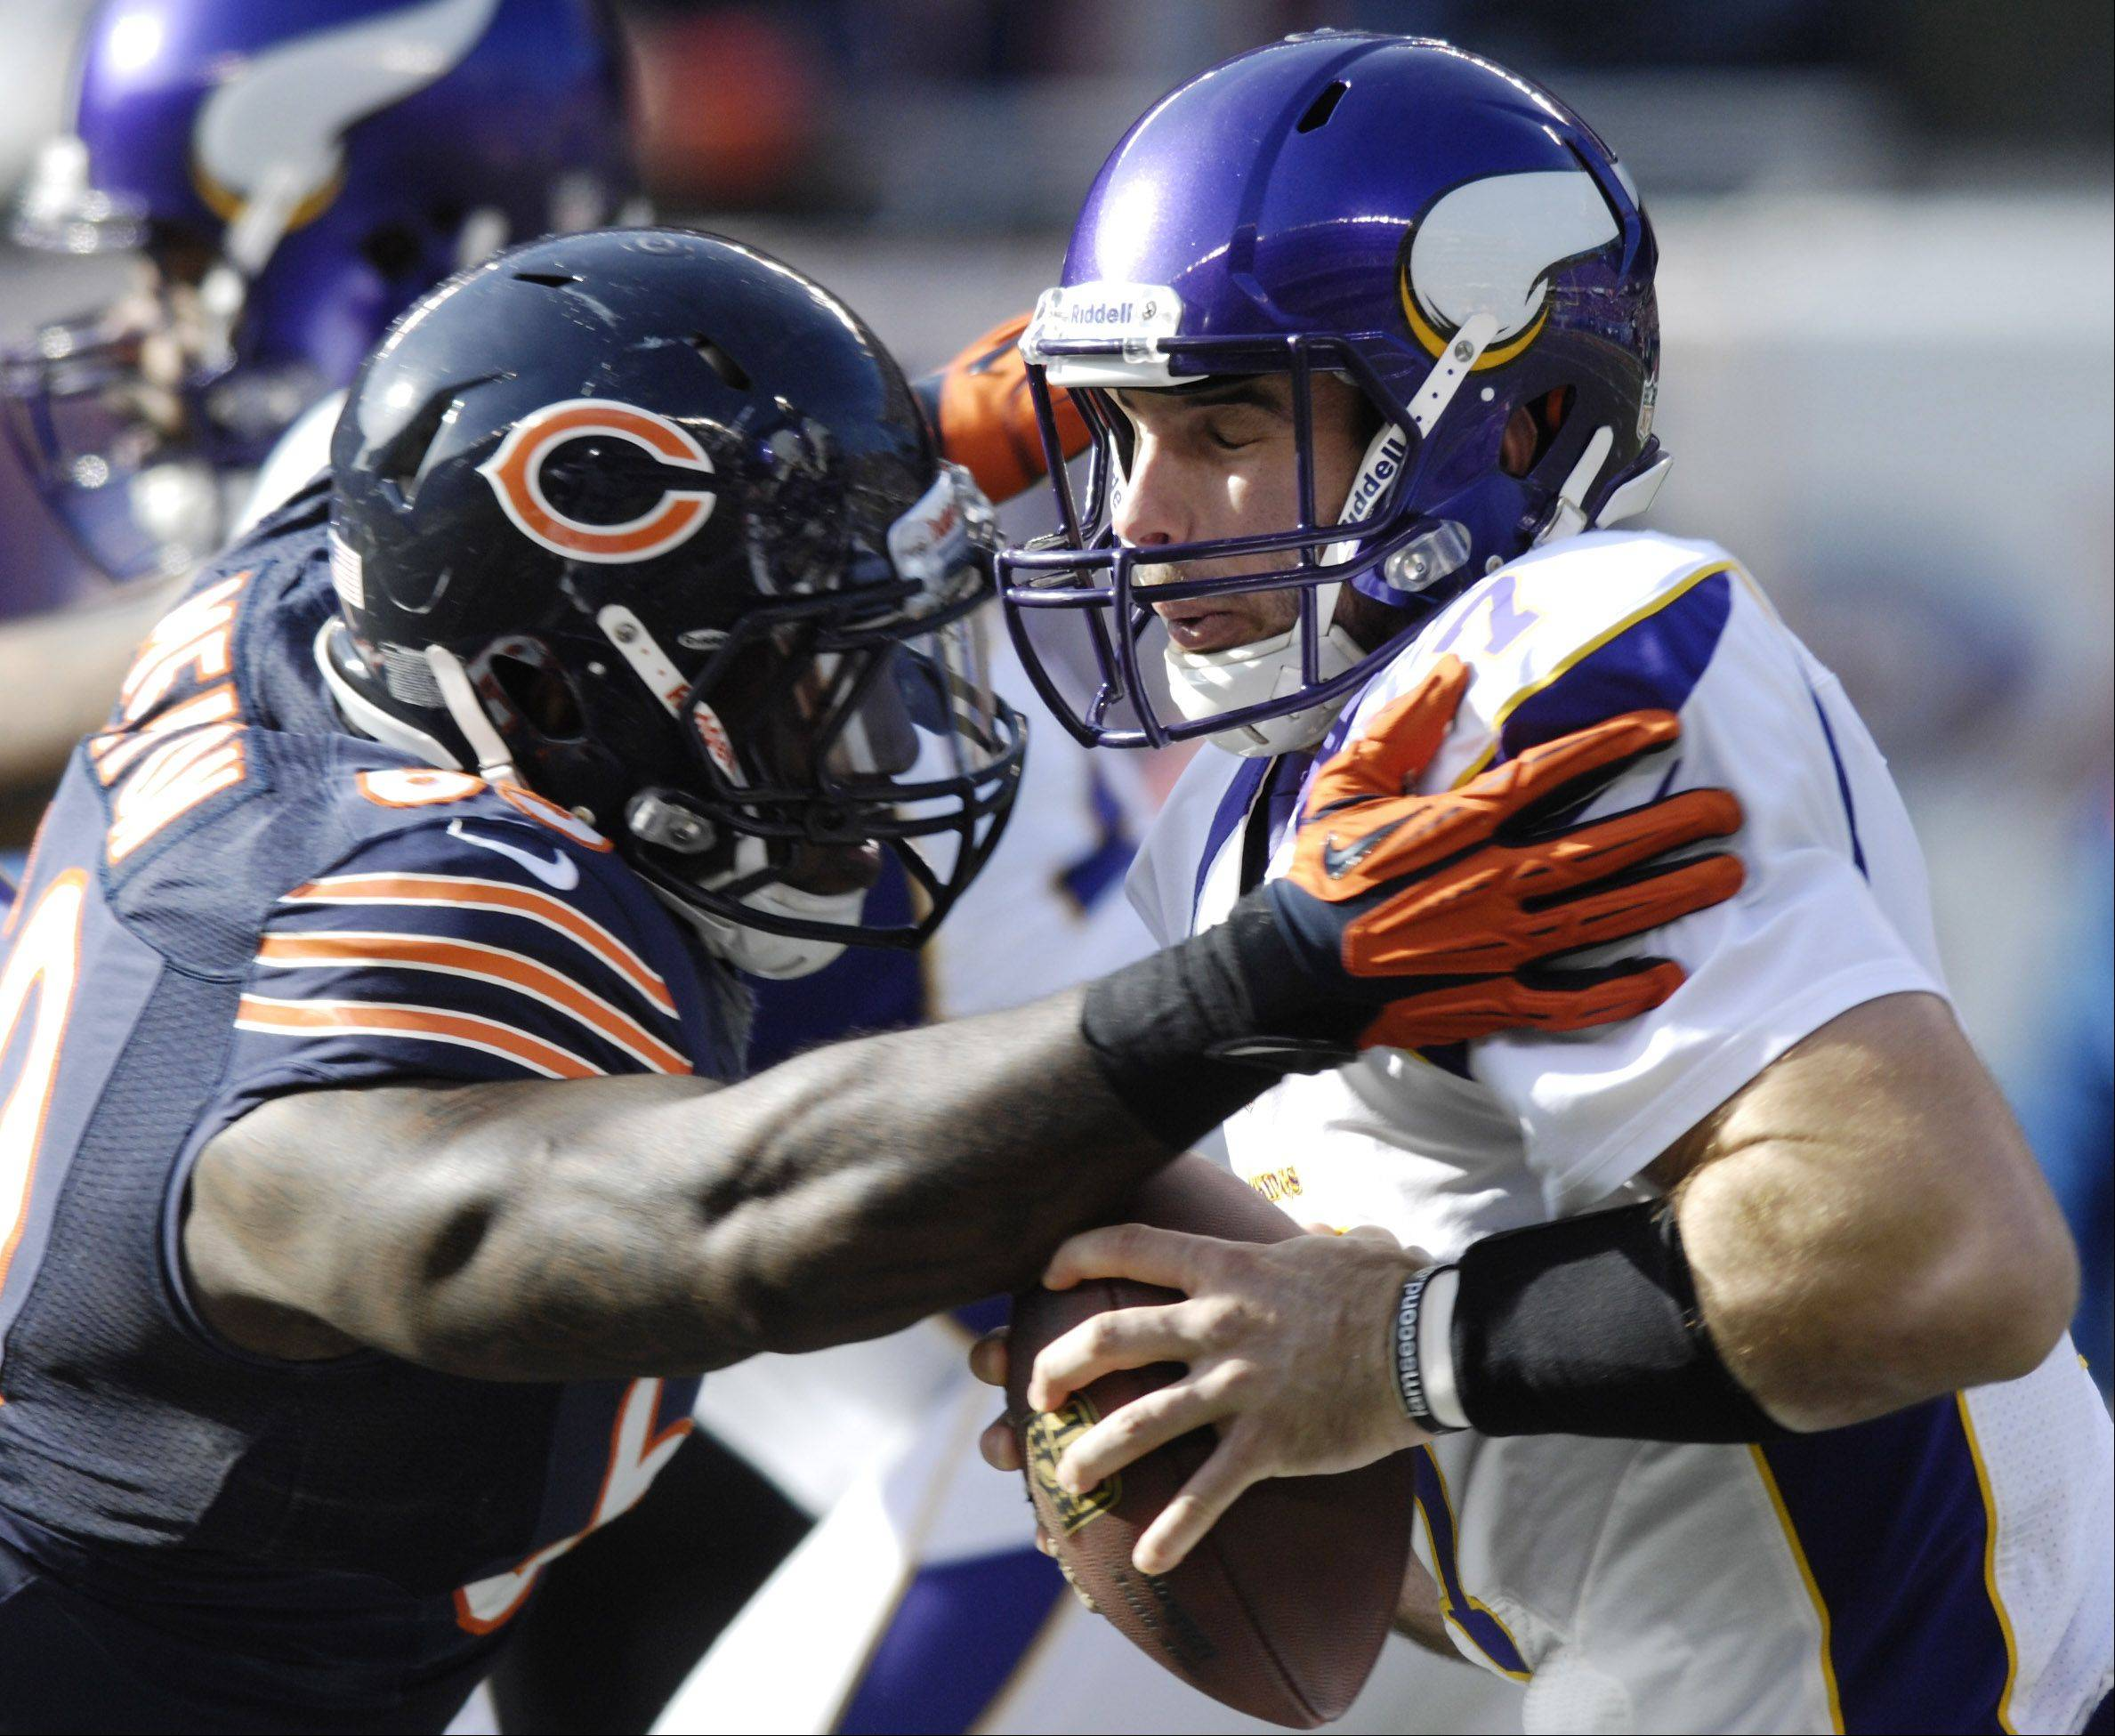 Chicago Bears defensive tackle Henry Melton sacks Minnesota Vikings quarterback Christian Ponder on the first play of the game at Soldier Field Sunday.